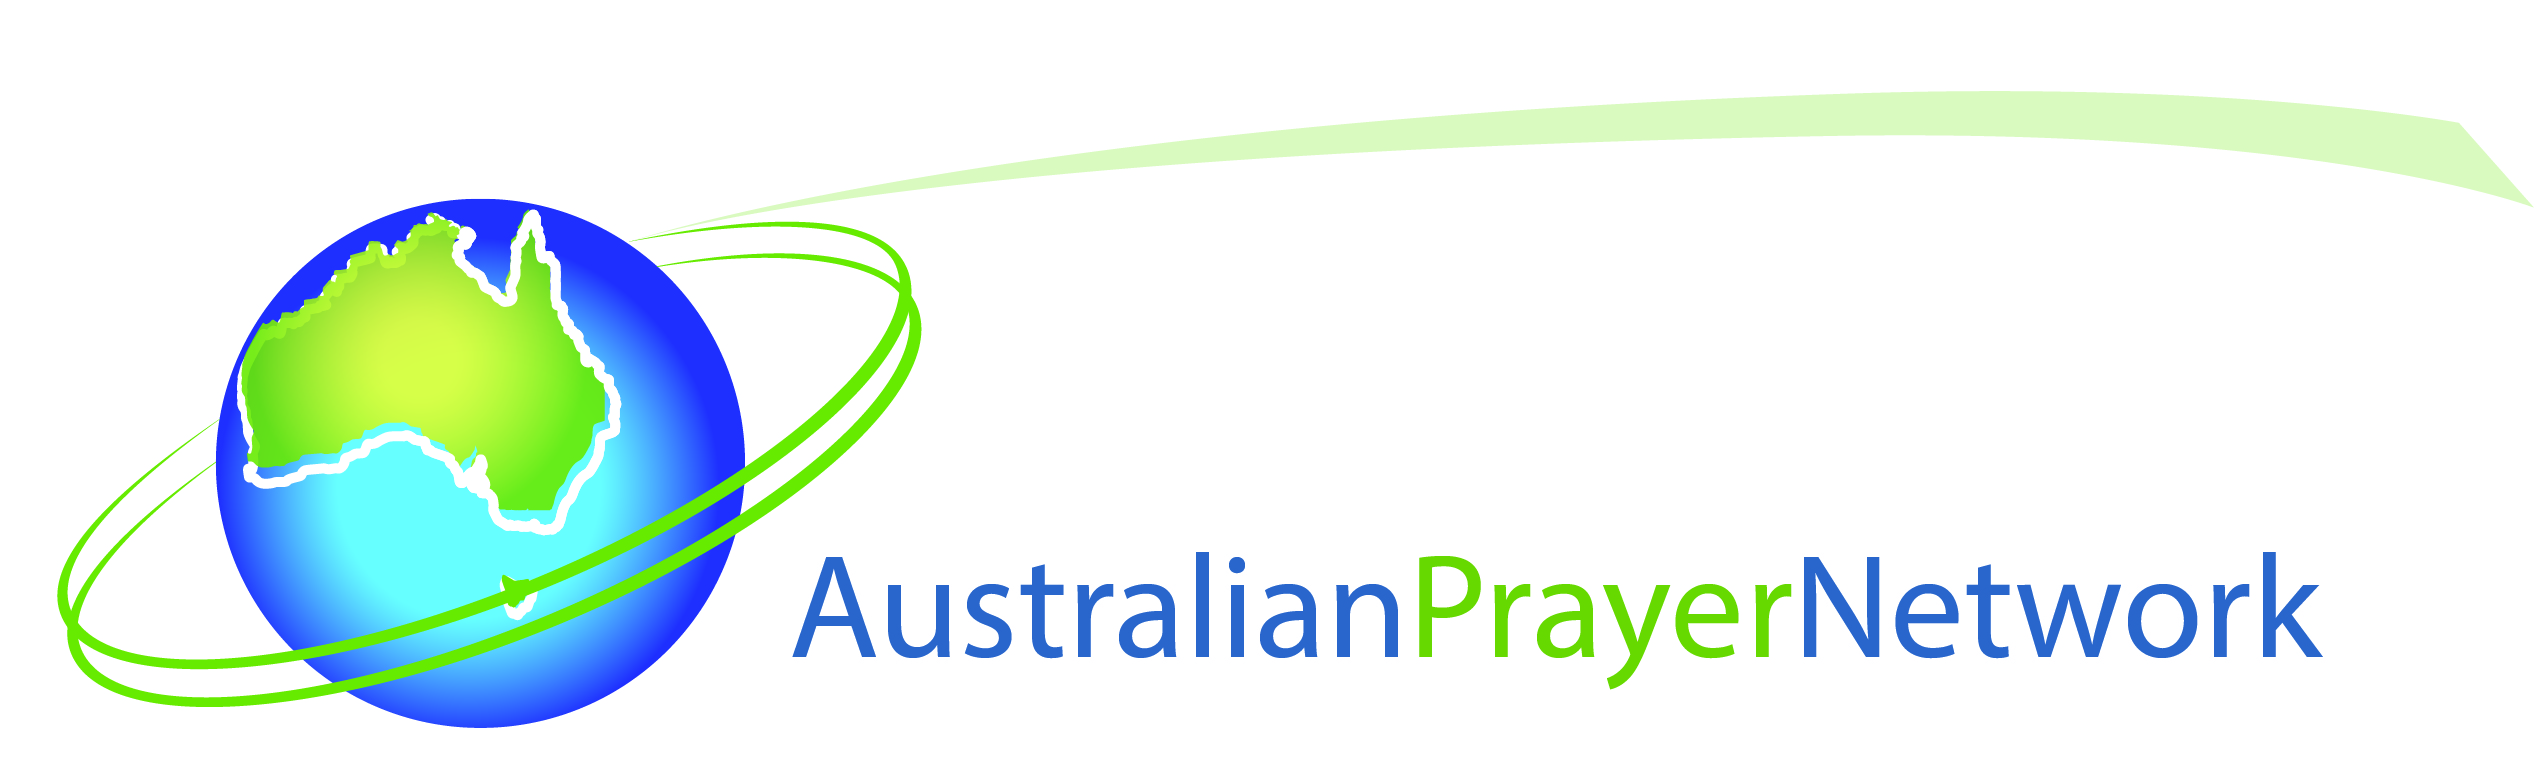 Australian Prayer Network Logo